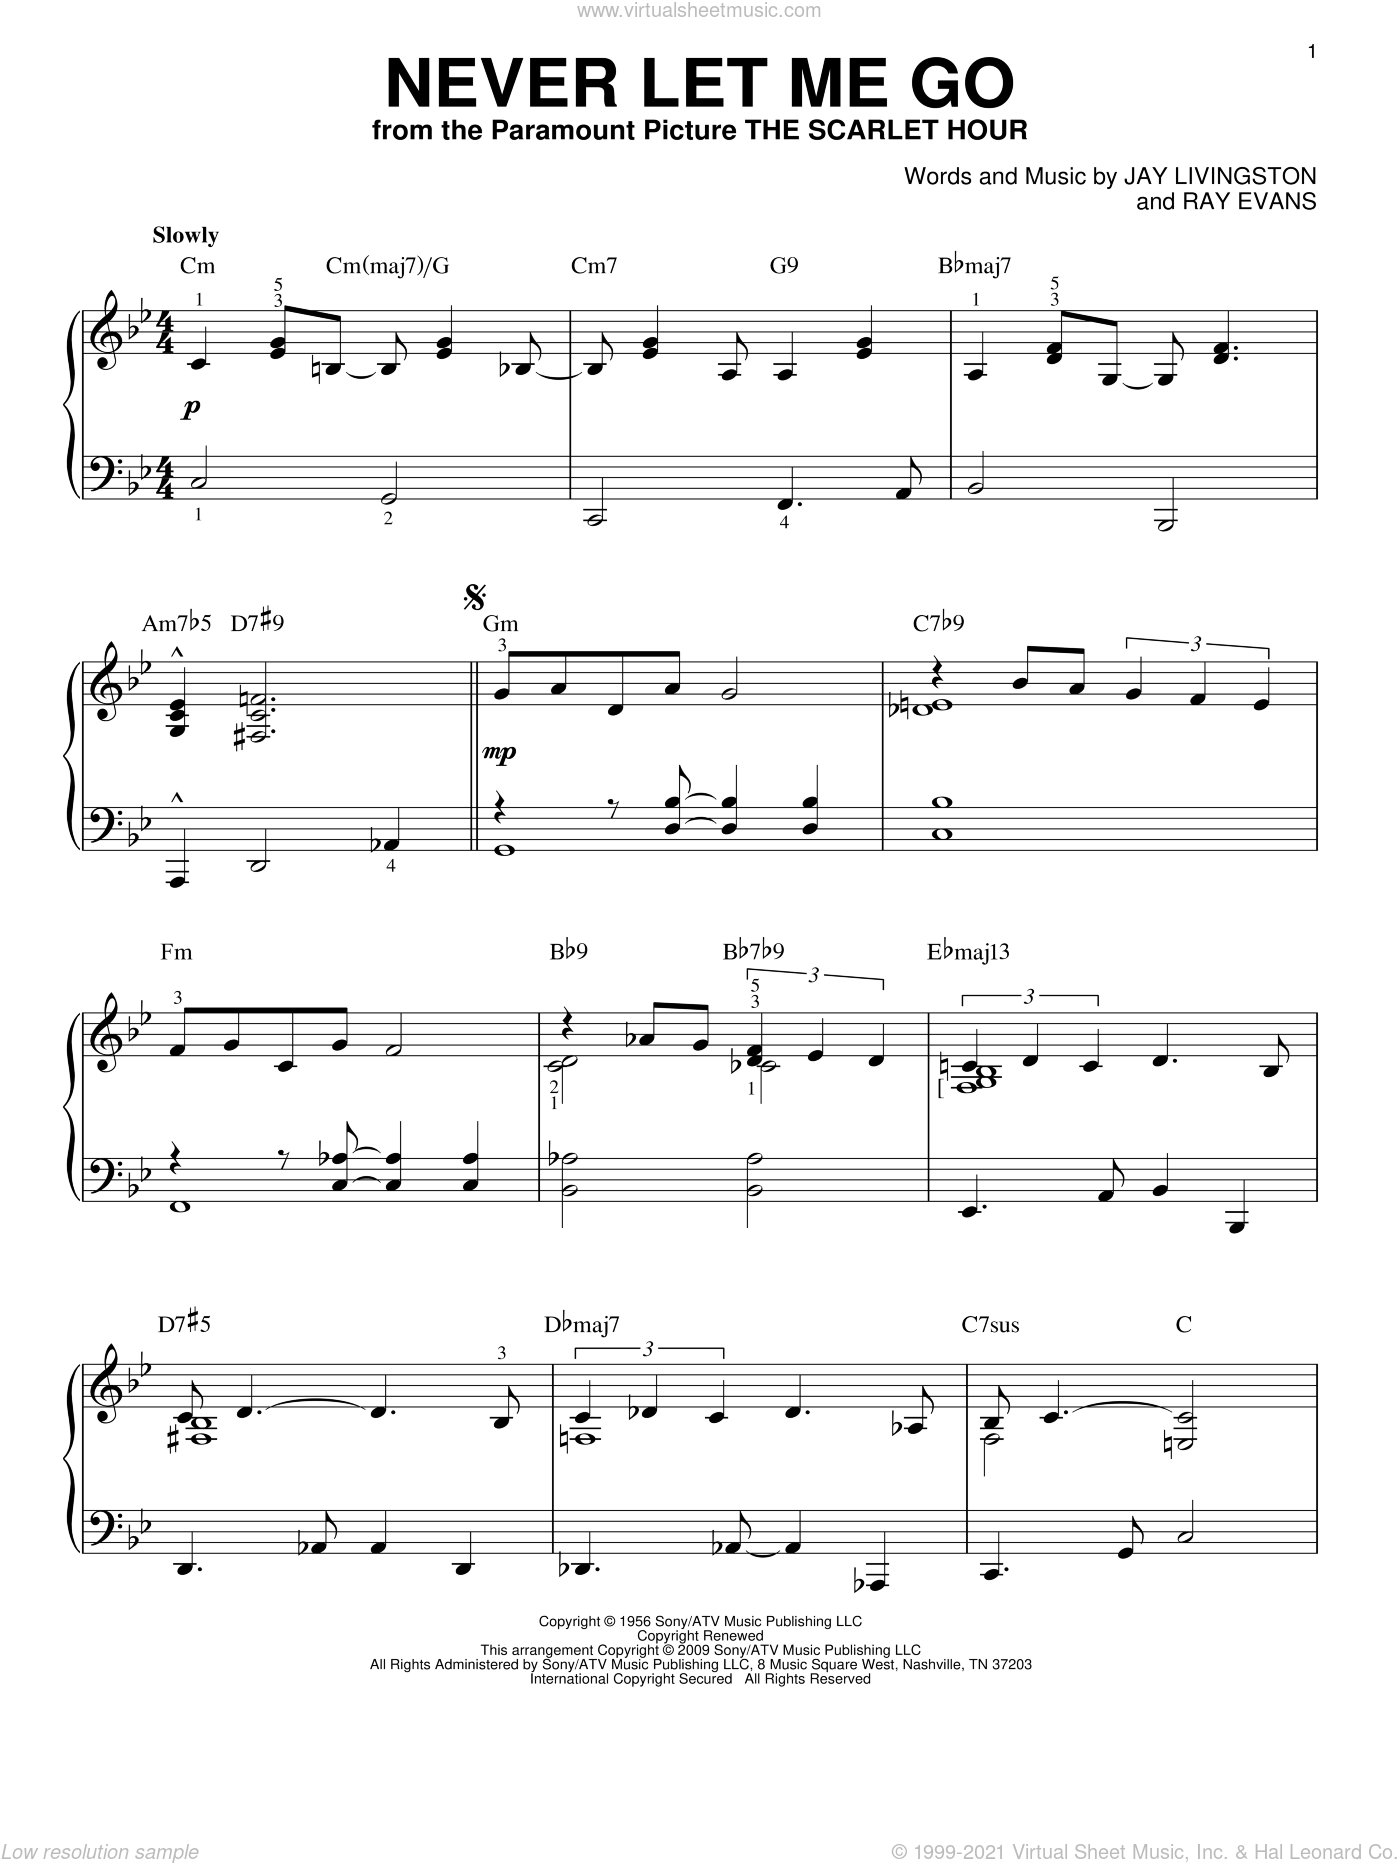 Never Let Me Go sheet music for piano solo by Dinah Washington, Jay Livingston and Ray Evans, intermediate